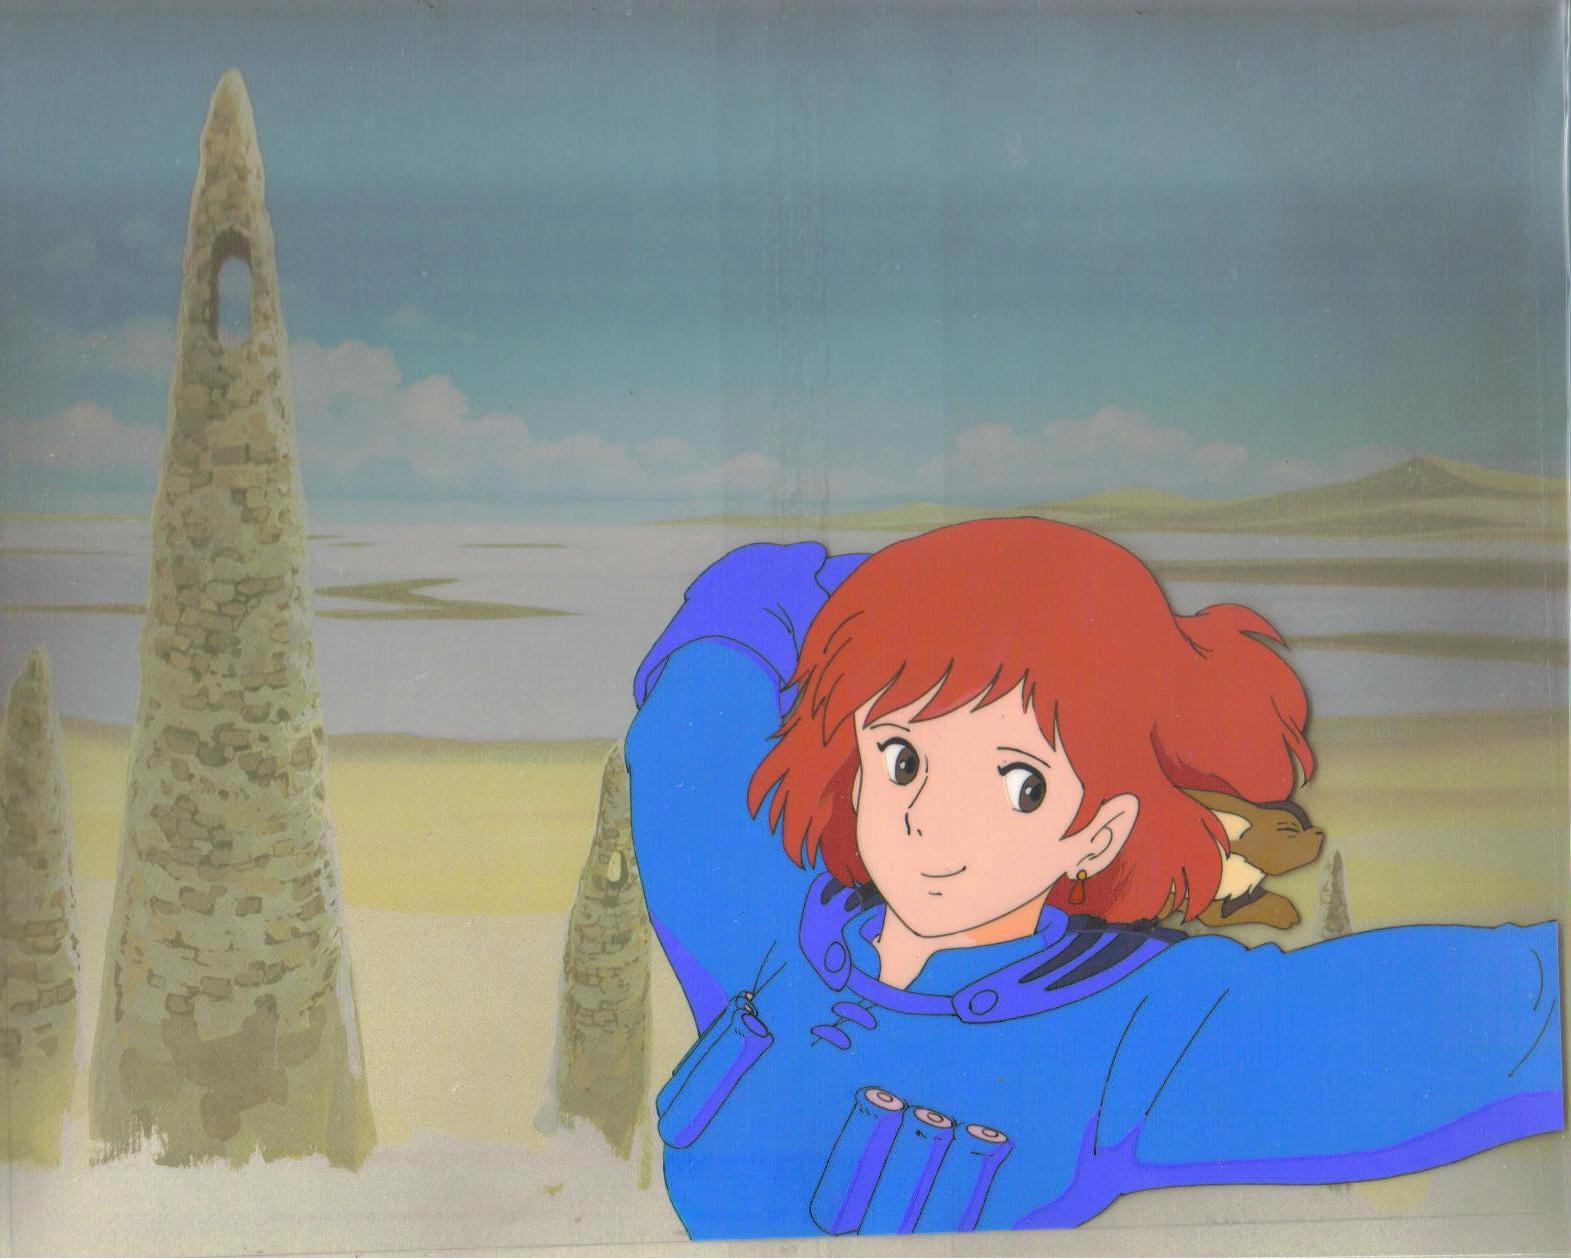 nausicaa_of_the_valley_of_the_wind_concept_art_cel_42.jpg